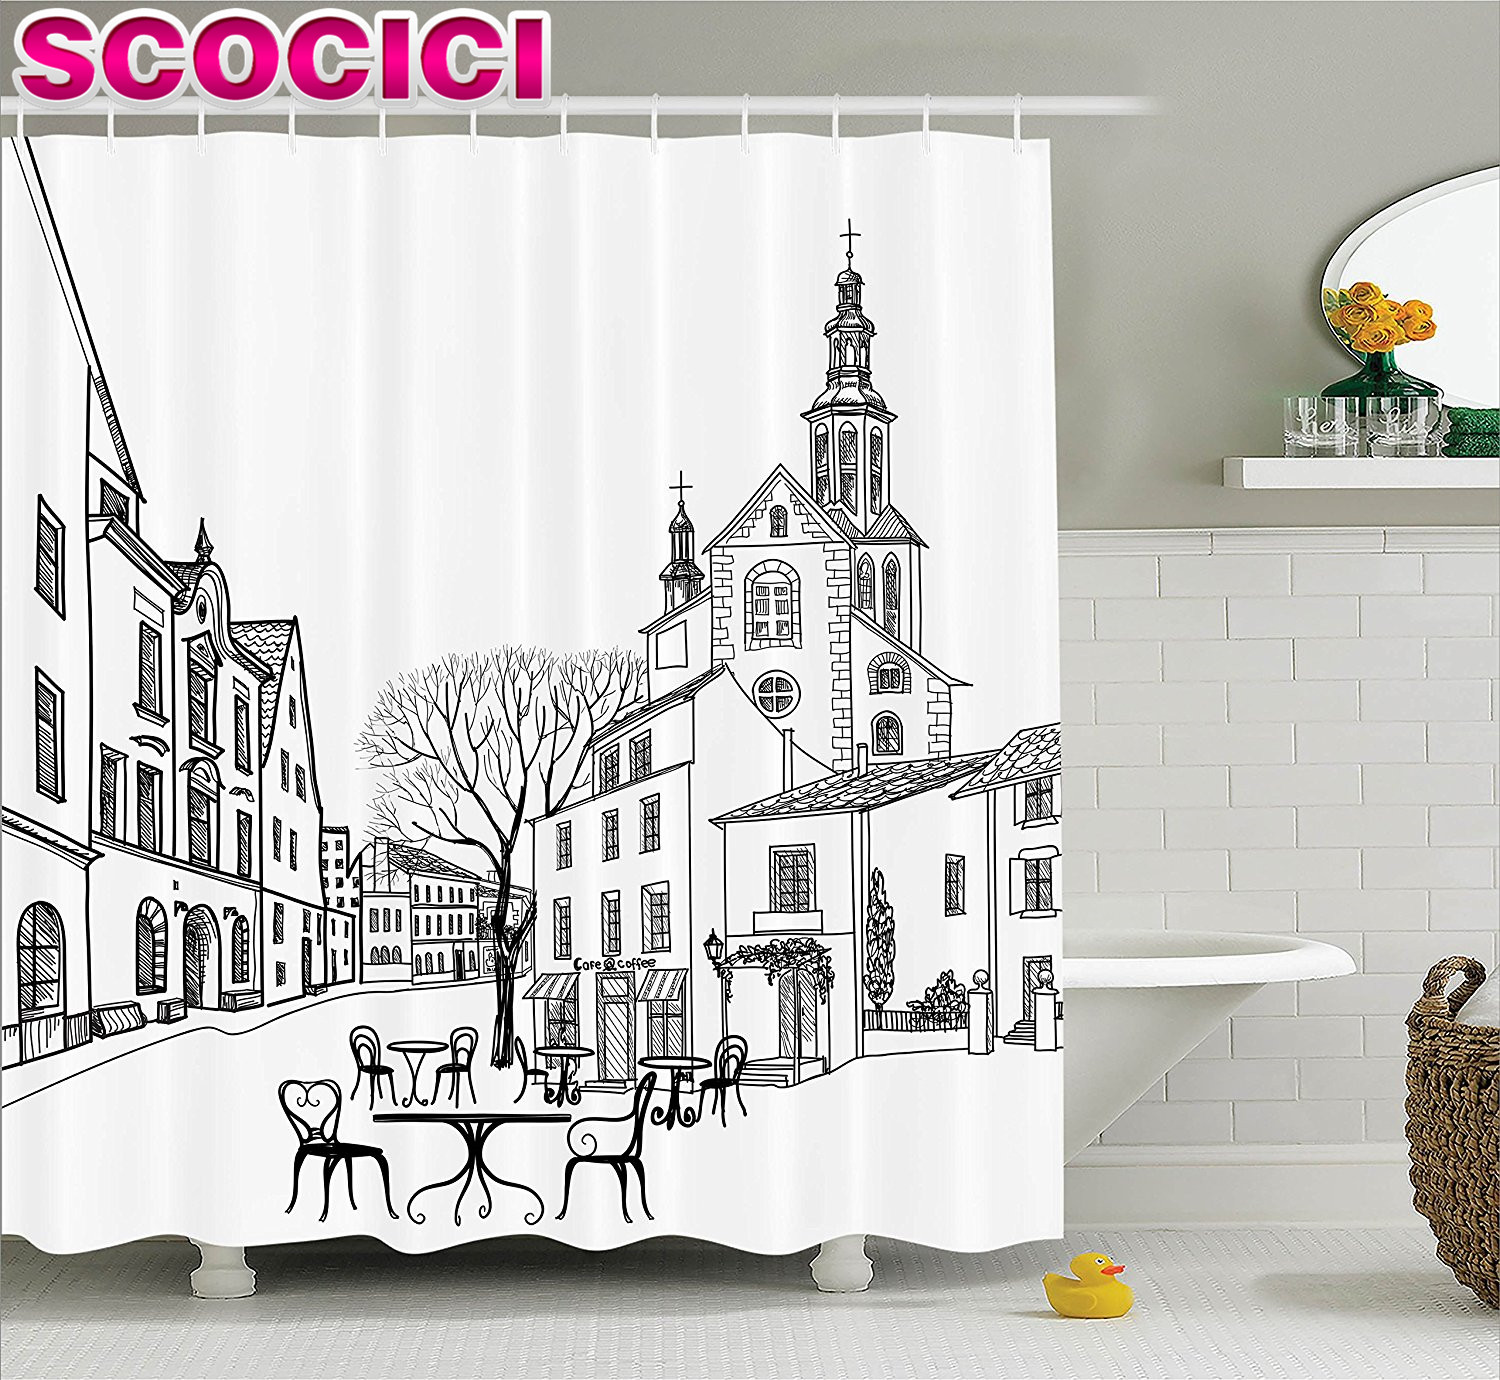 Cafe curtains for bathroom - Wanderlust Decor Shower Curtain Set Street Cafe In Old City Houses Buildings Tree On Alleyway Medieval